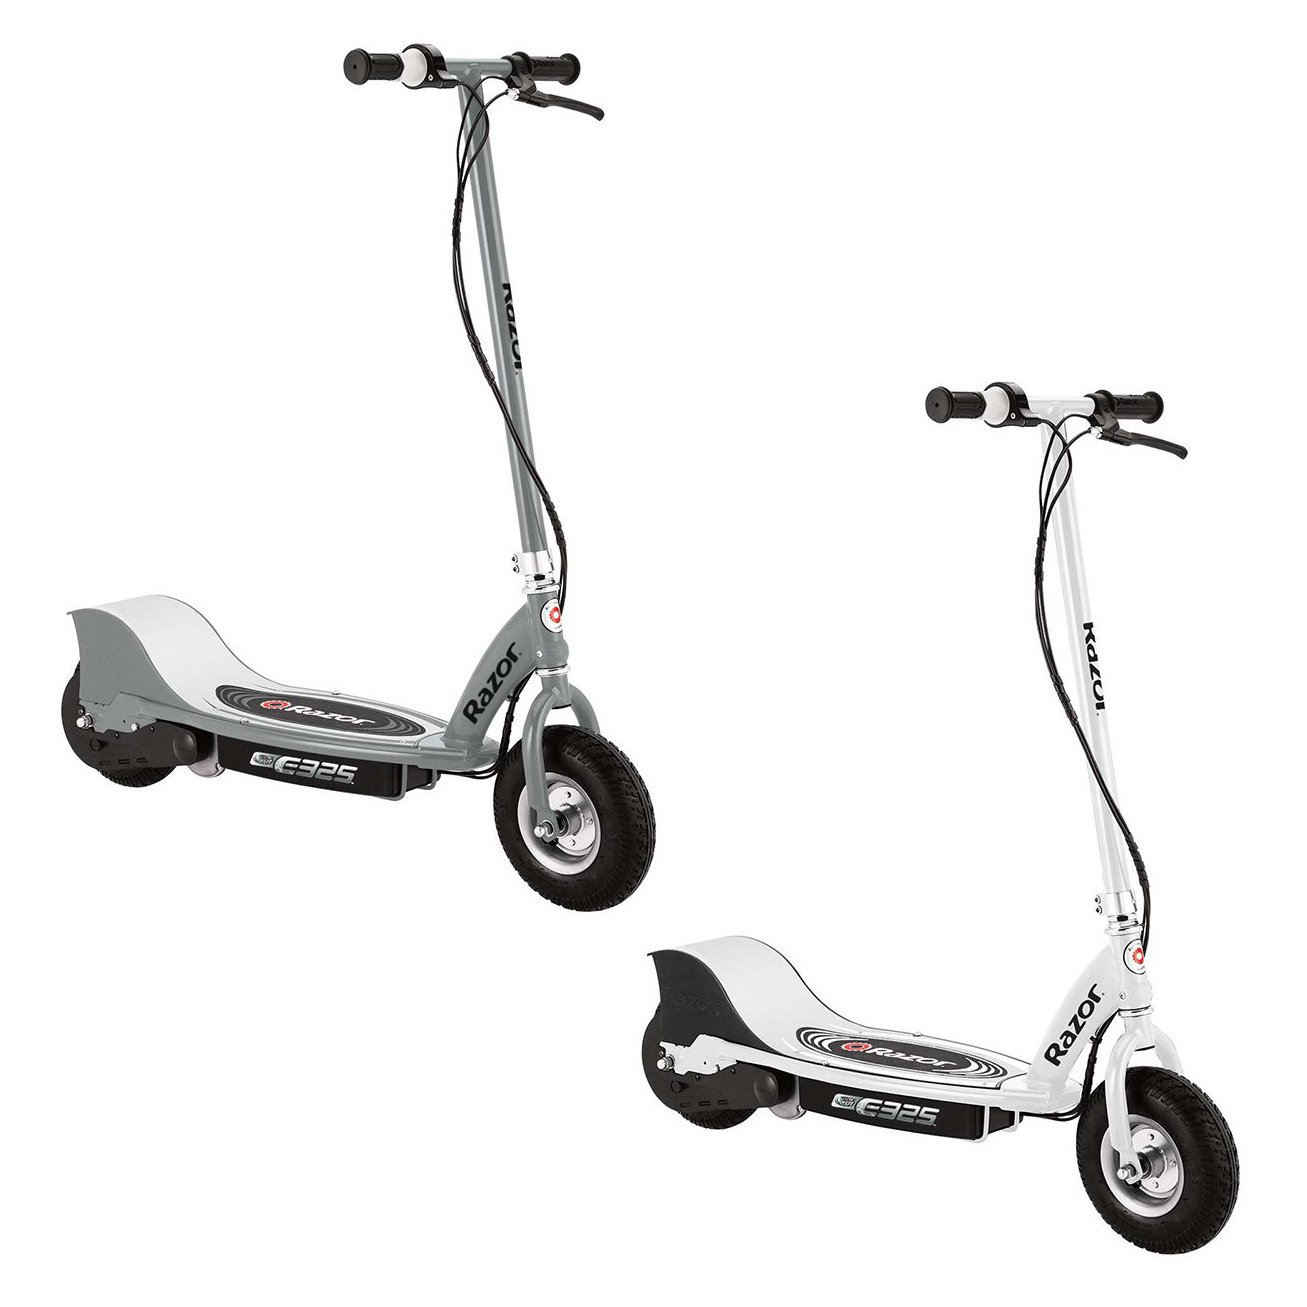 Razor E325 Electric Battery Motorized Ride On Kids Scooters, 1 White & 1 Silver by Razor